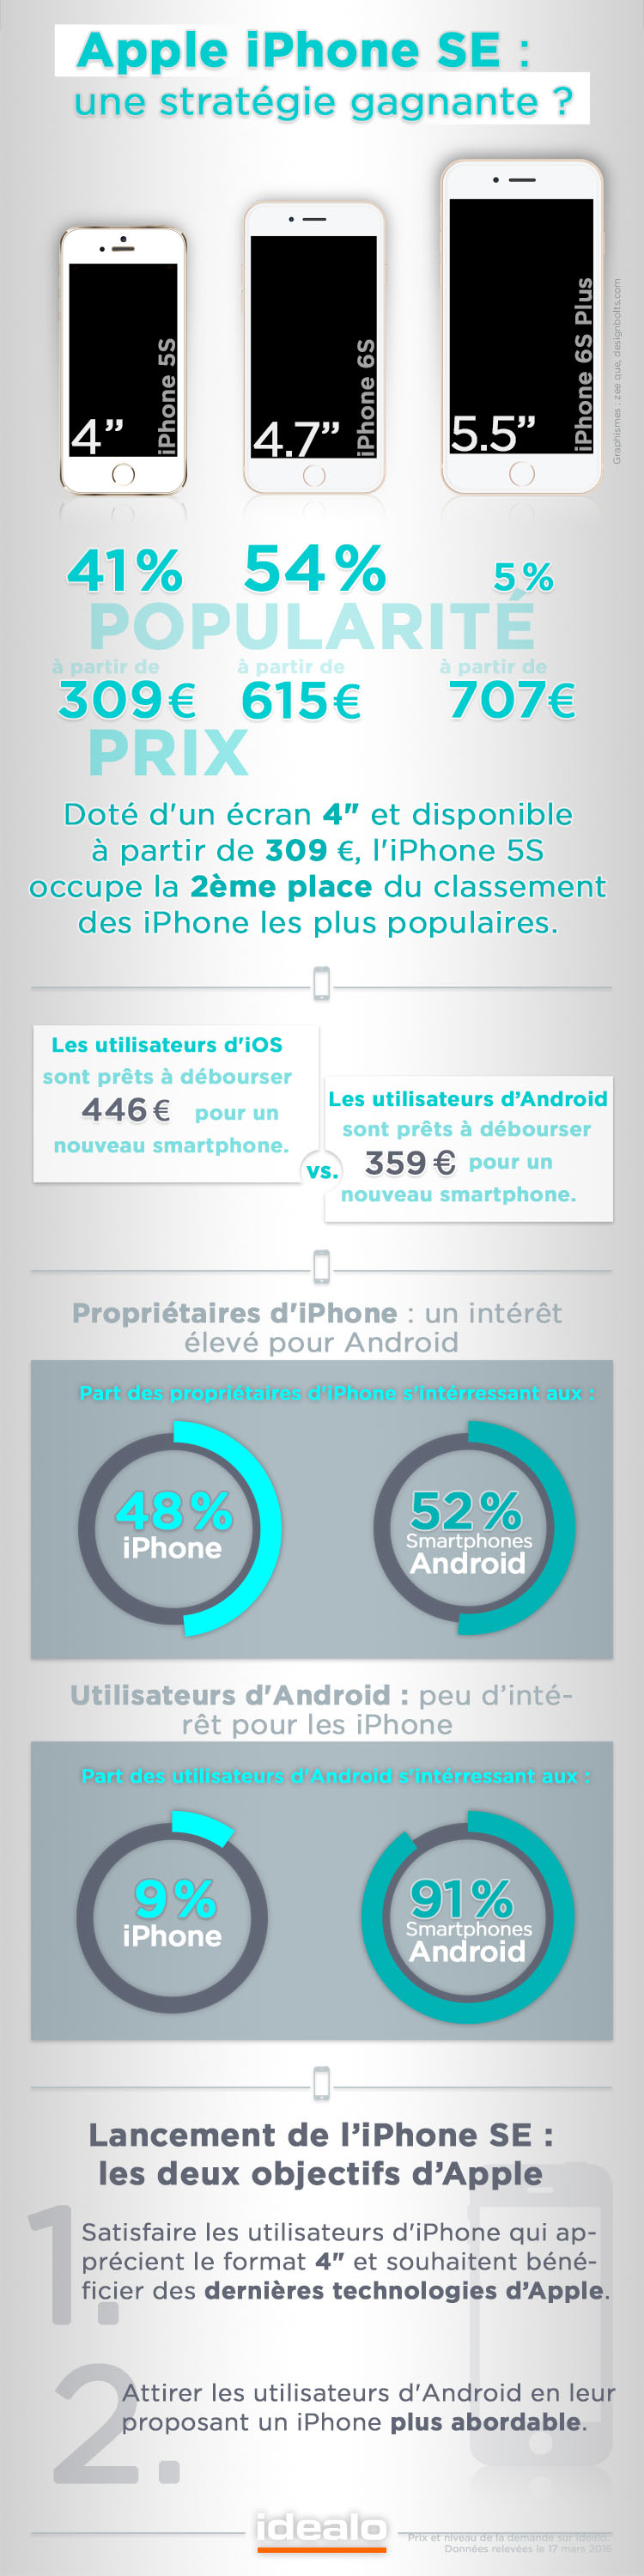 Infographie-Idealo-iPhone-SE